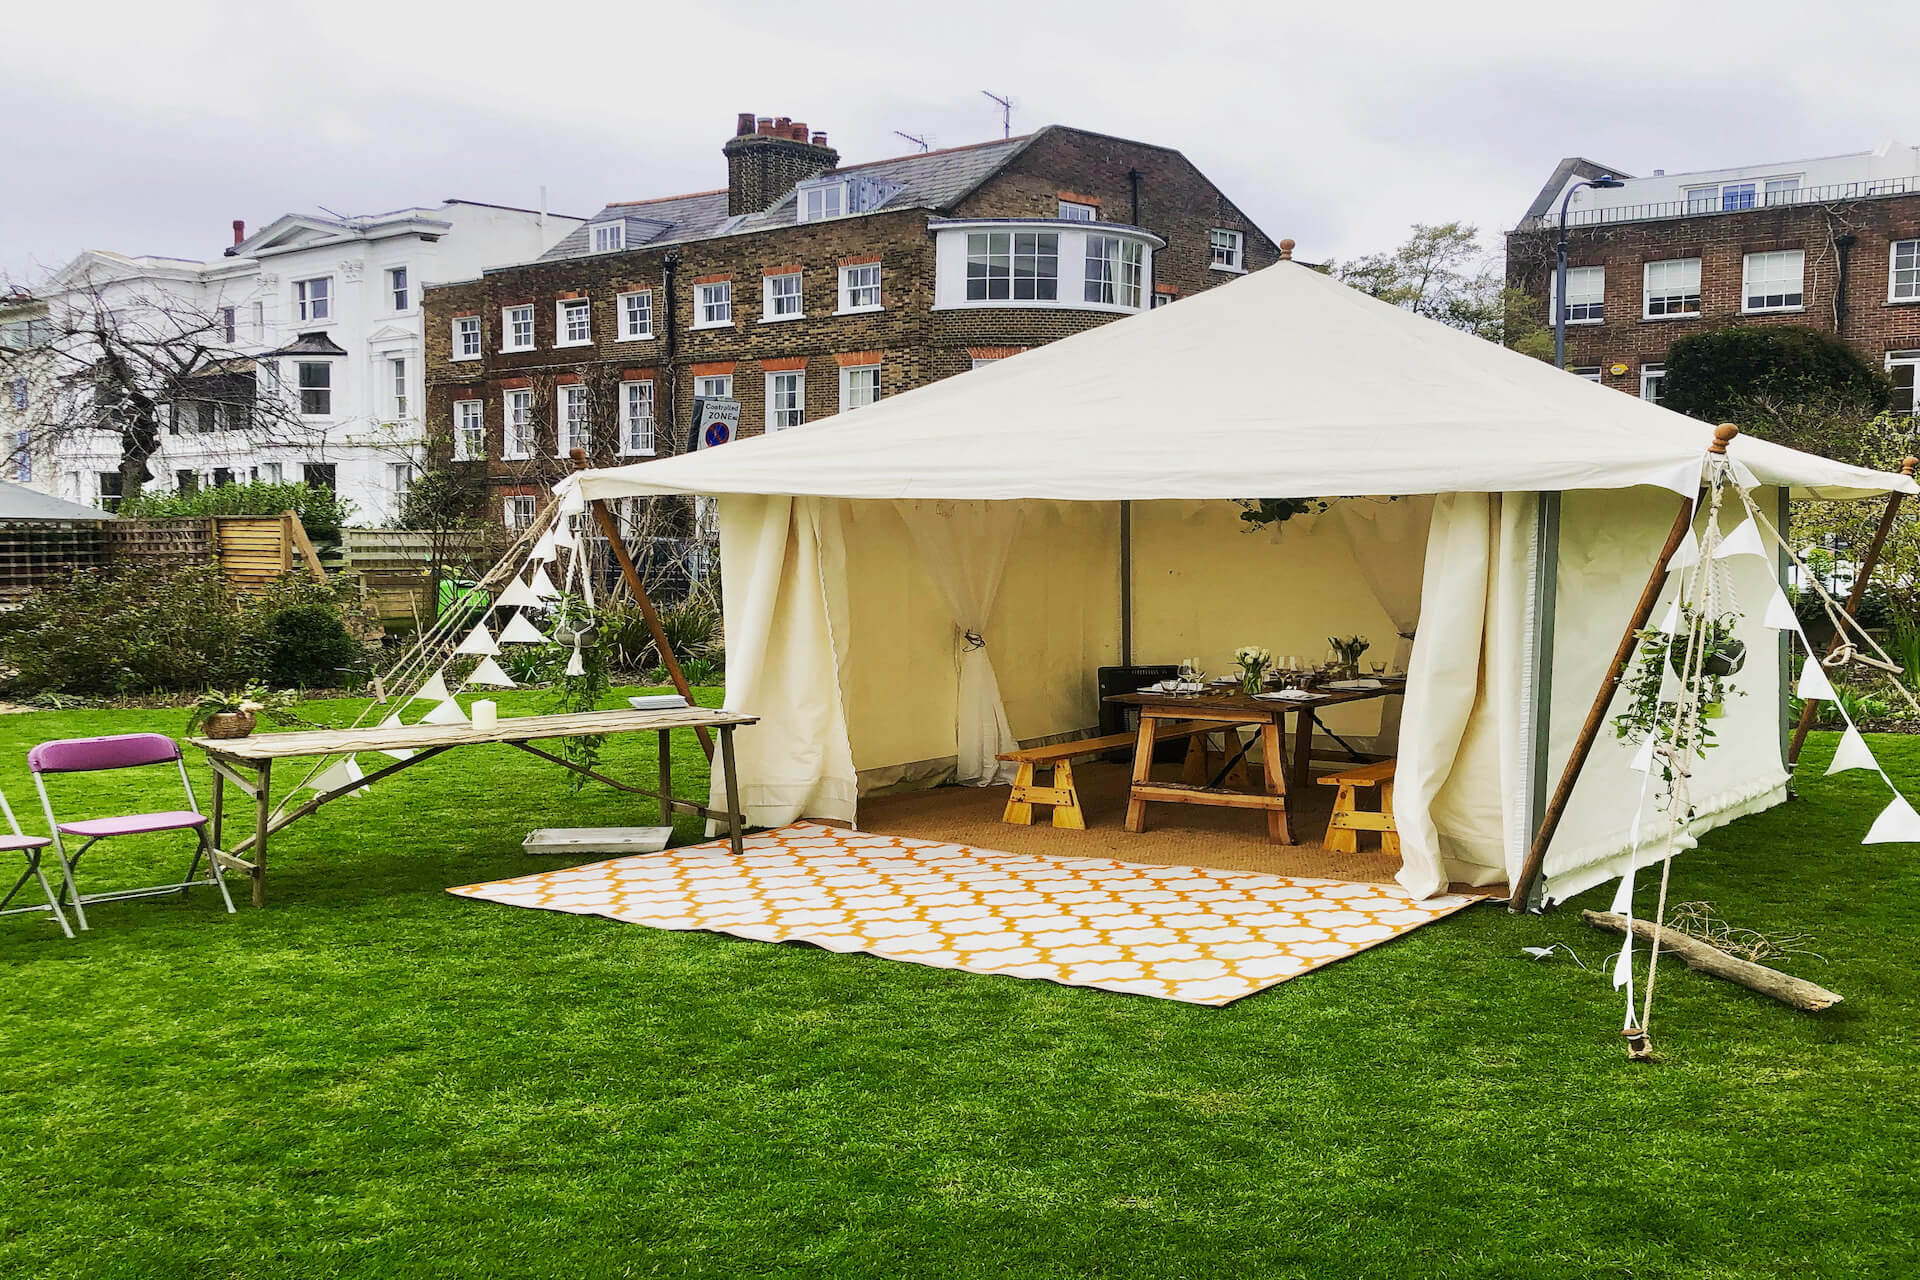 micro wedding marquee set up in a private garden.